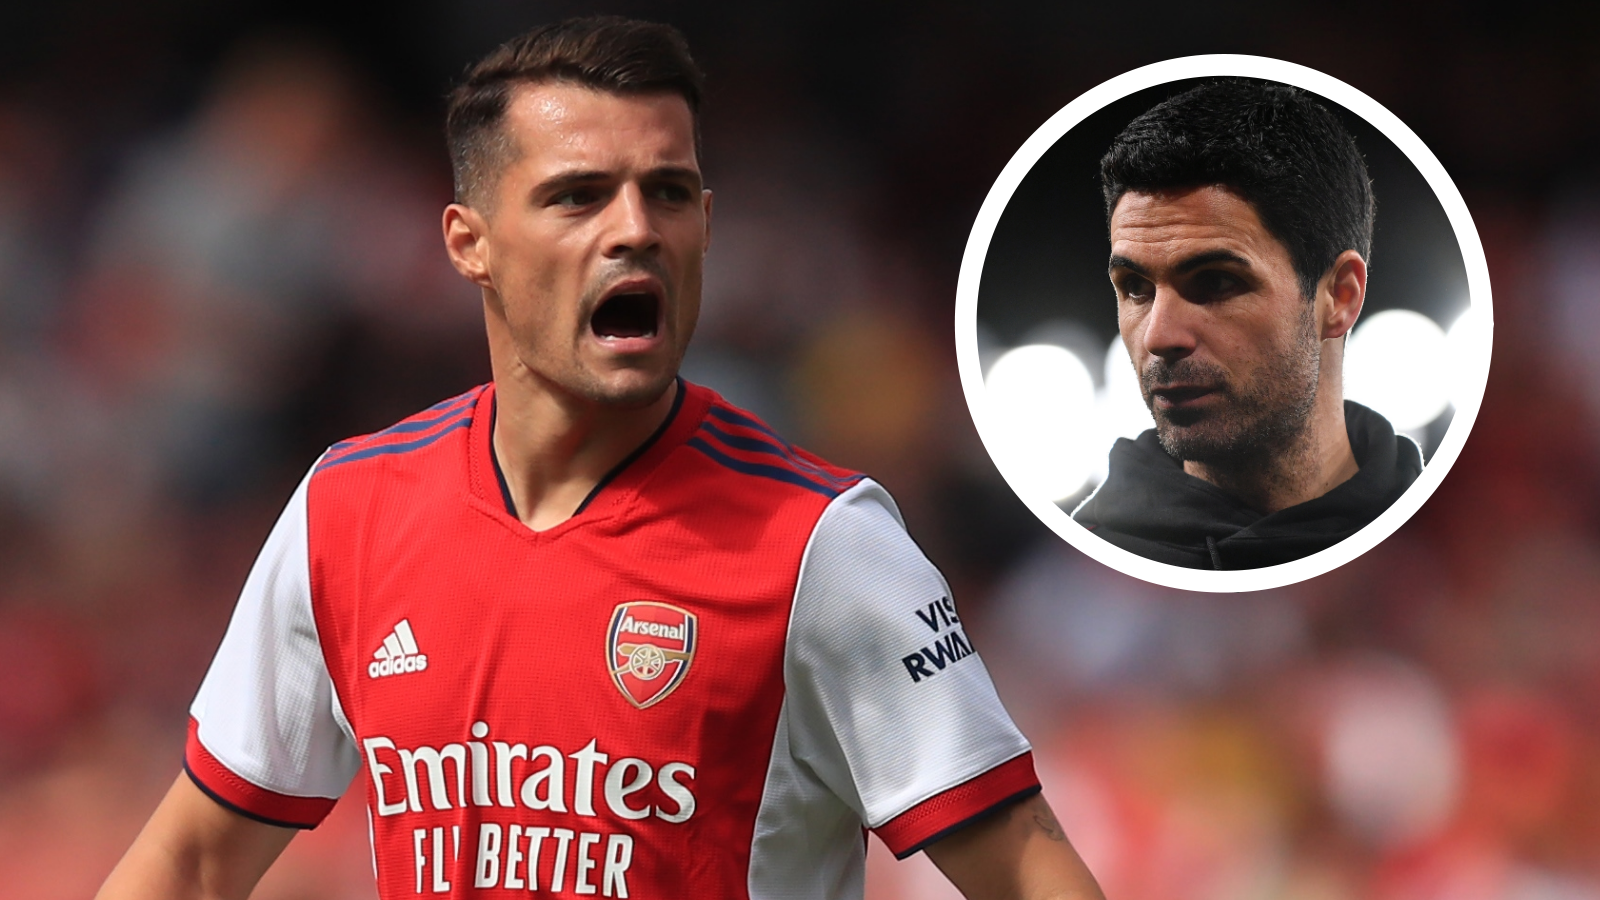 'Xhaka is staying at Arsenal' - Arteta confirms Roma move is off